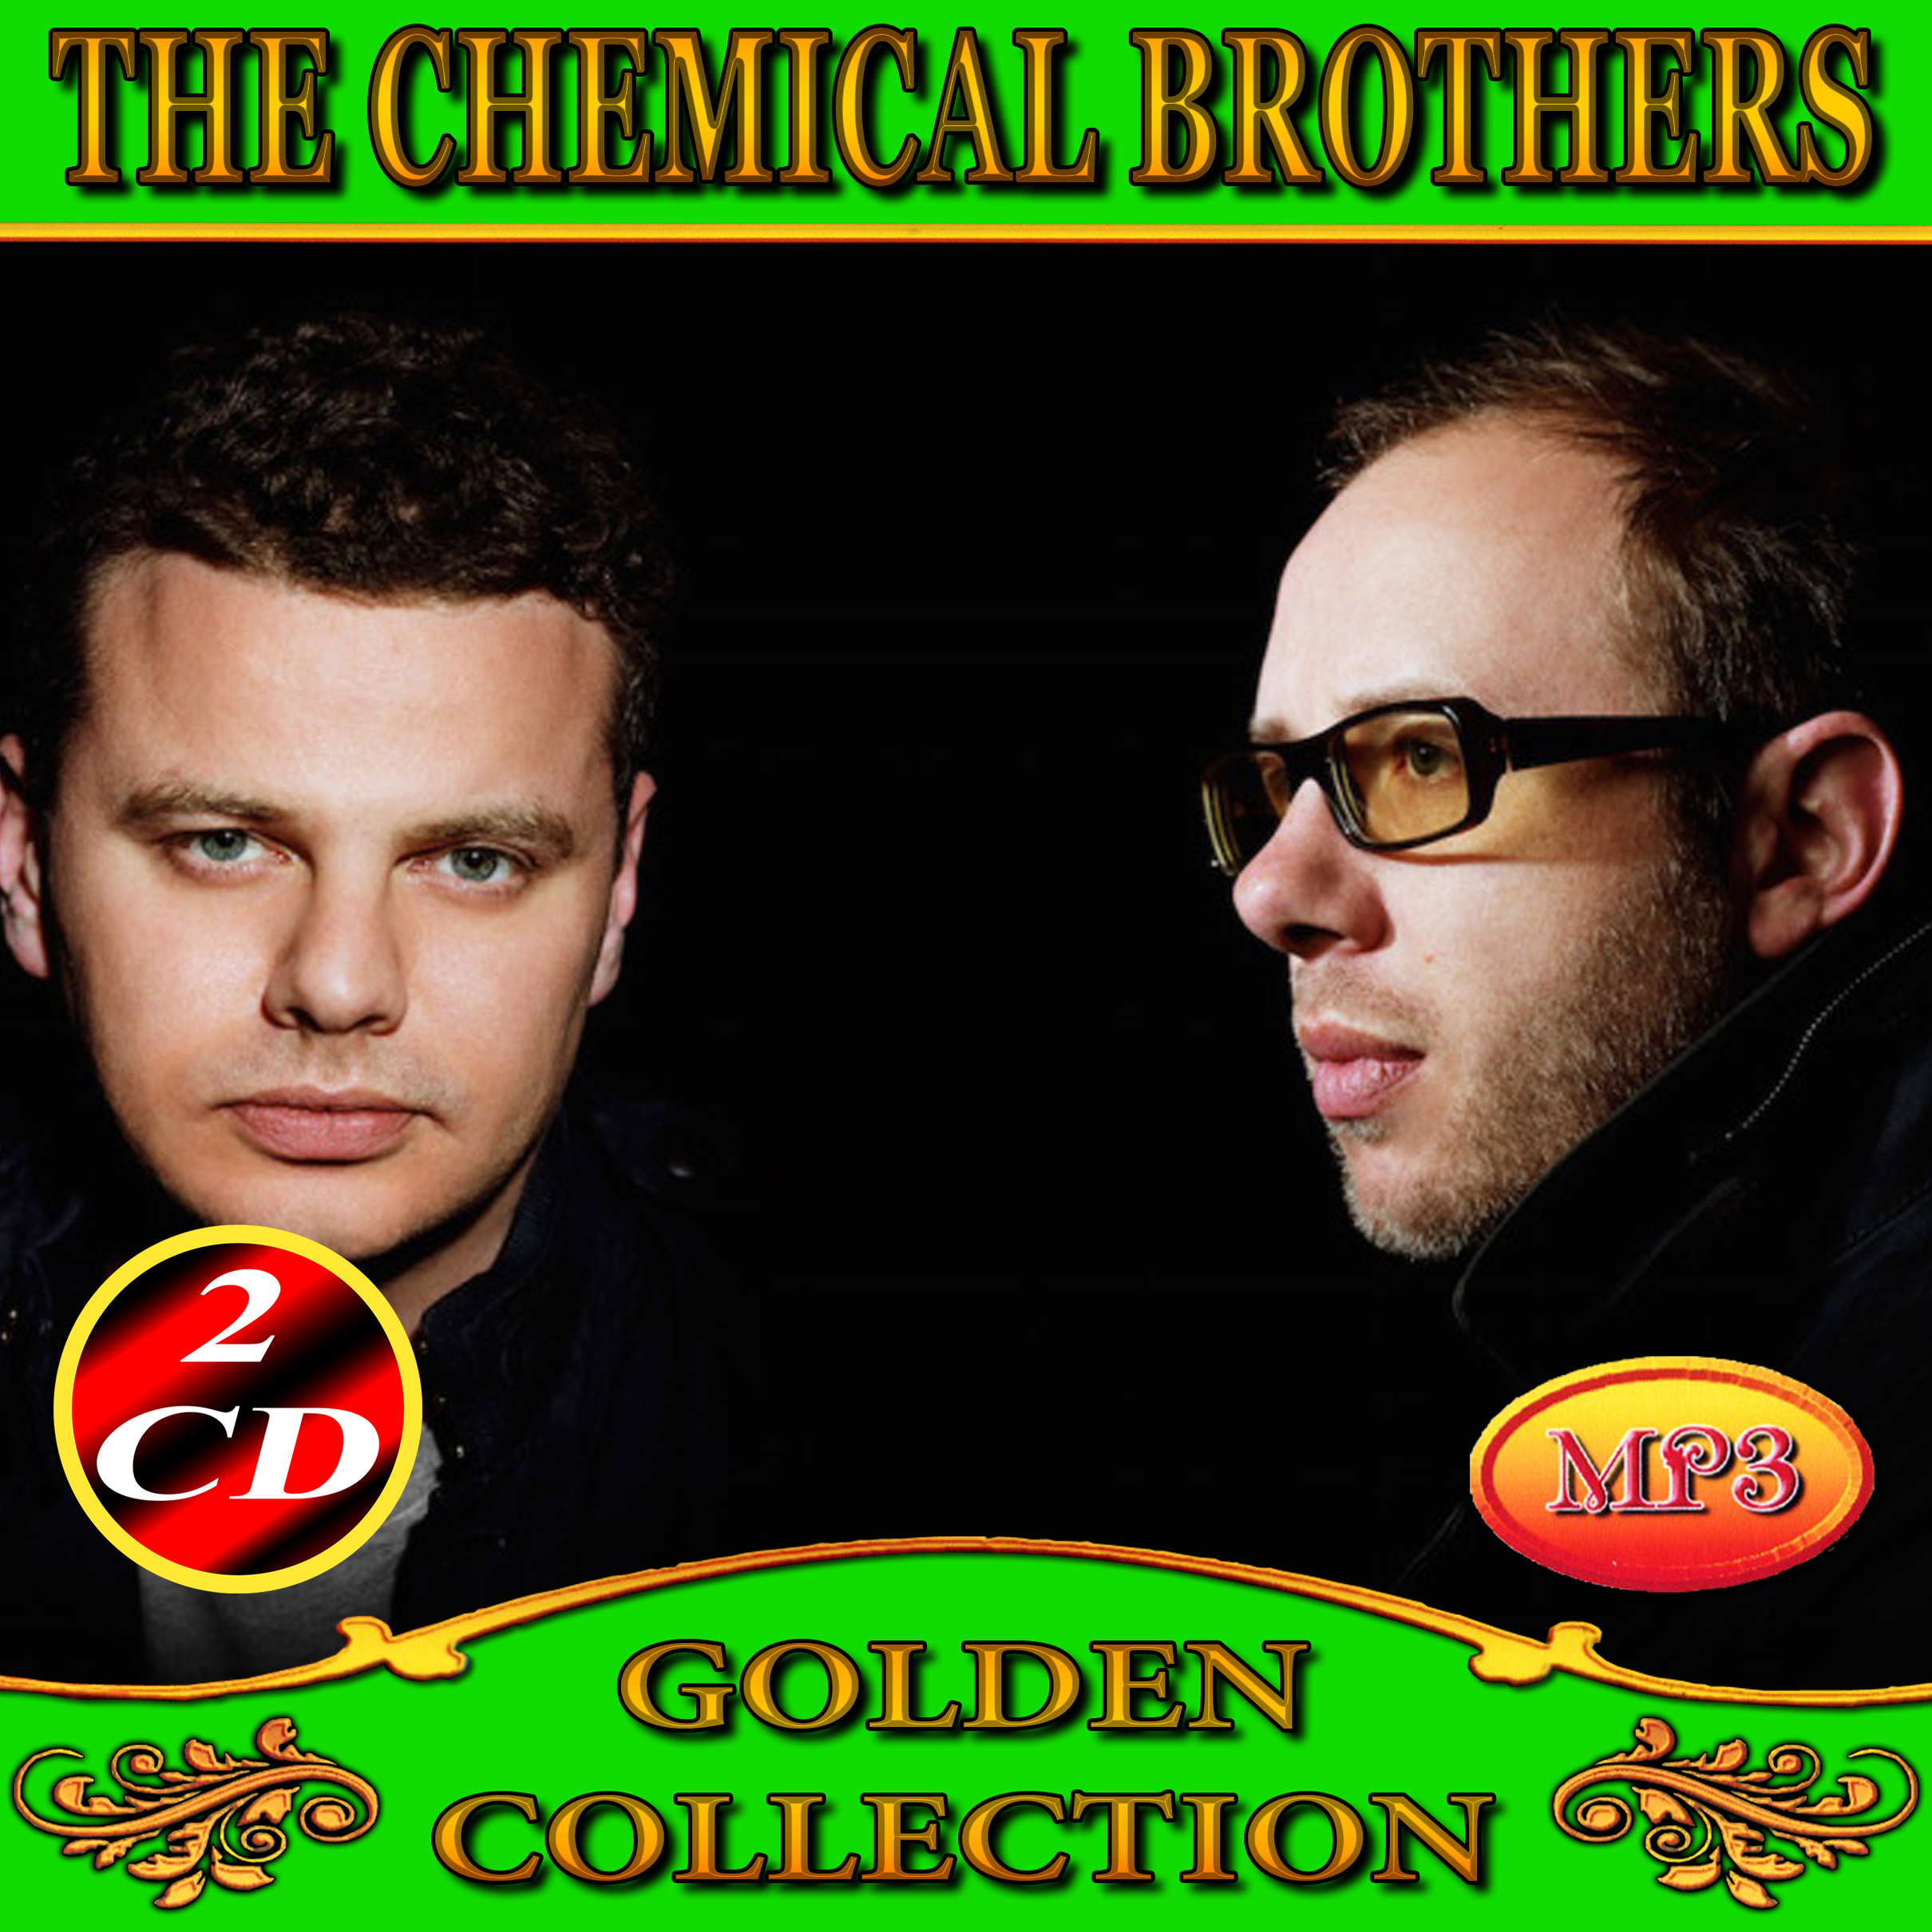 The Chemical Brothers 2cd [mp3]